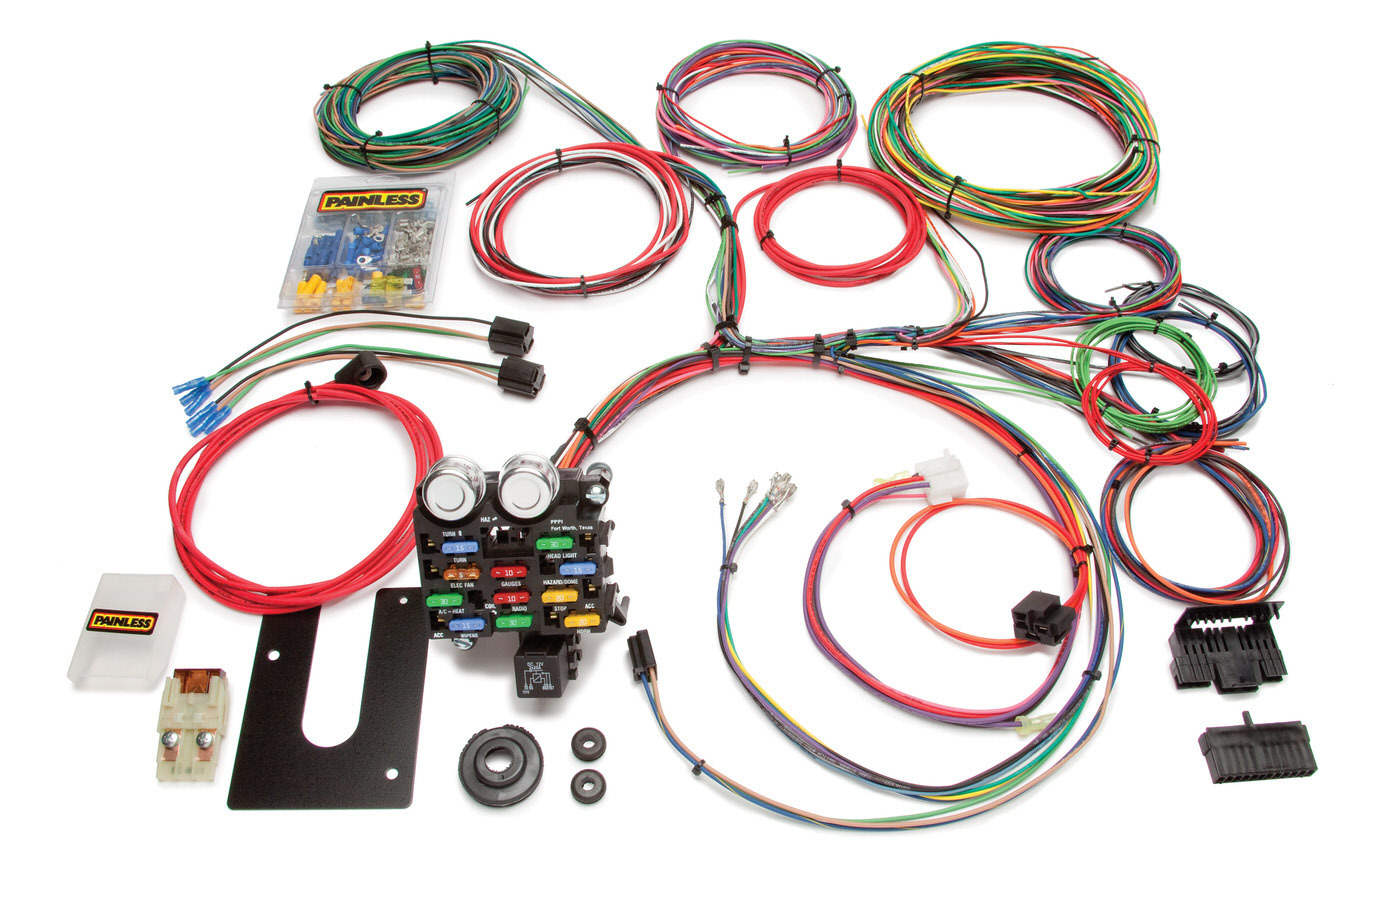 Painless Wiring 10103 Car Wiring Harness, Classic Customizable Pickup, 21 Circuit, Complete, Universal, Kit